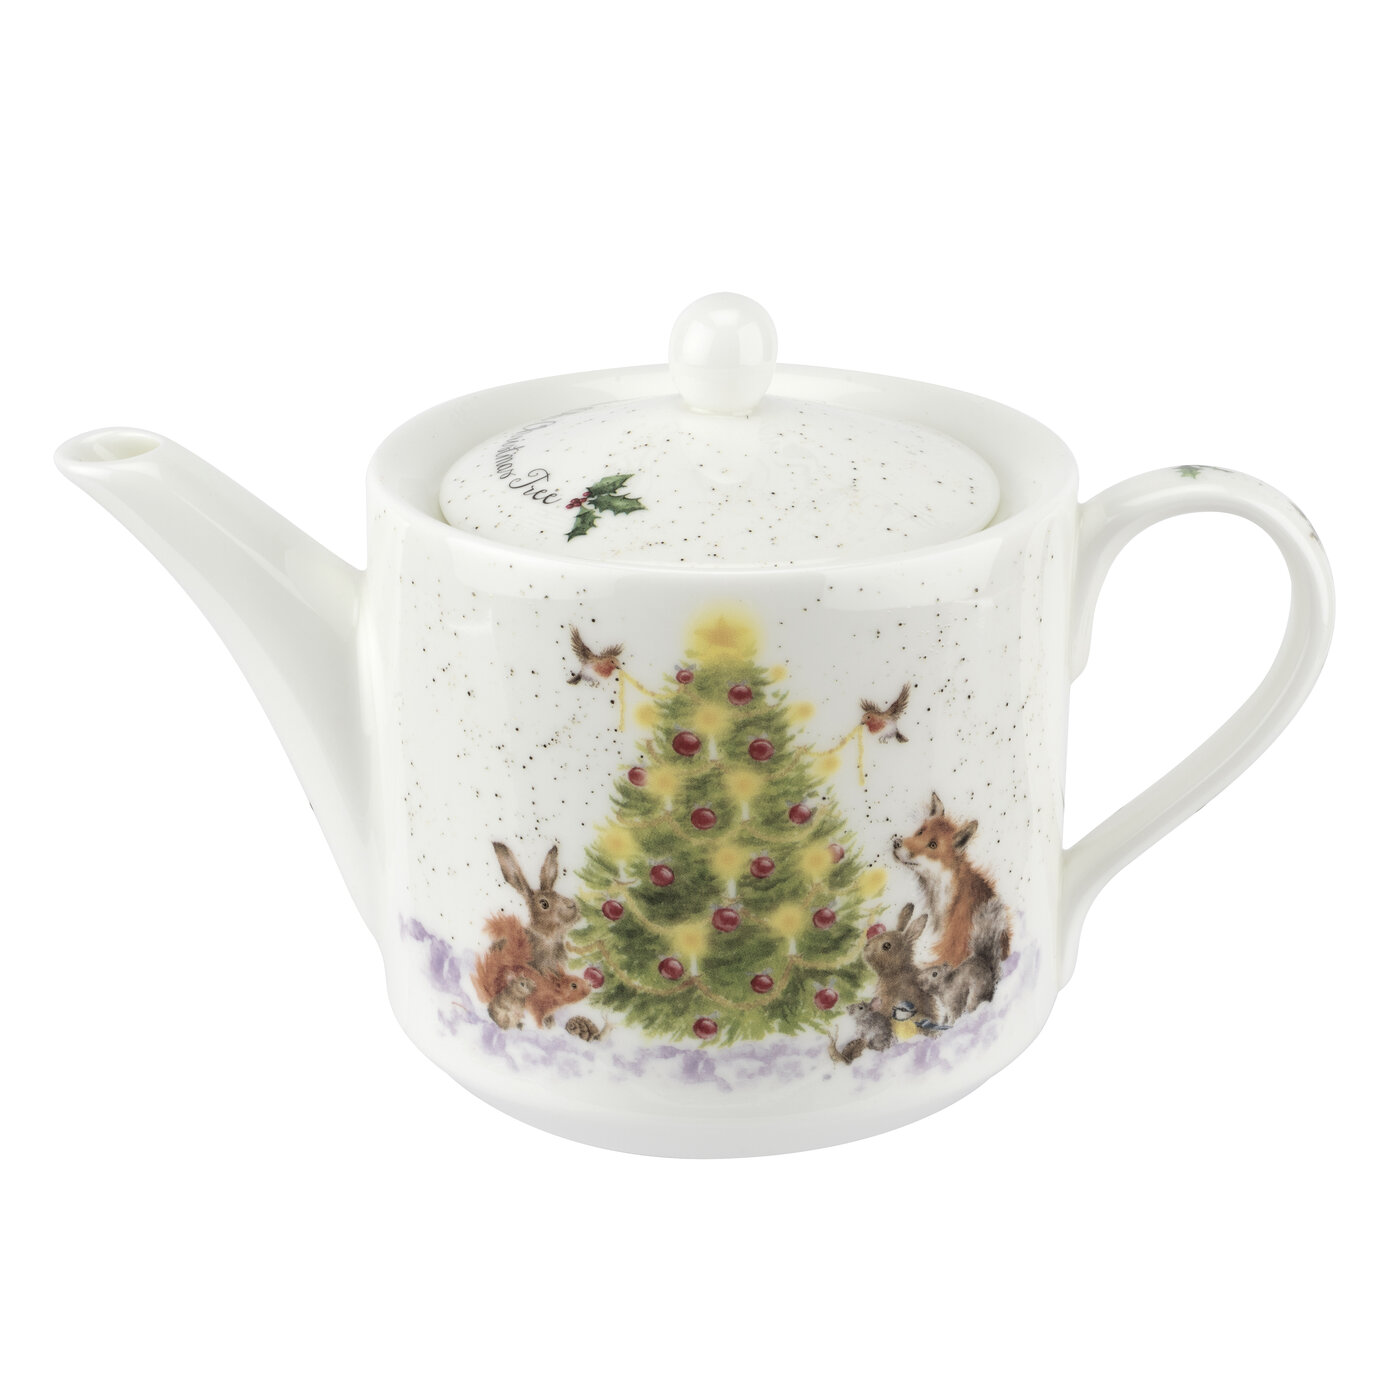 Royal Worcester Wrendale Designs Teapot 1 Pint (Oh Christmas Tree) image number 0